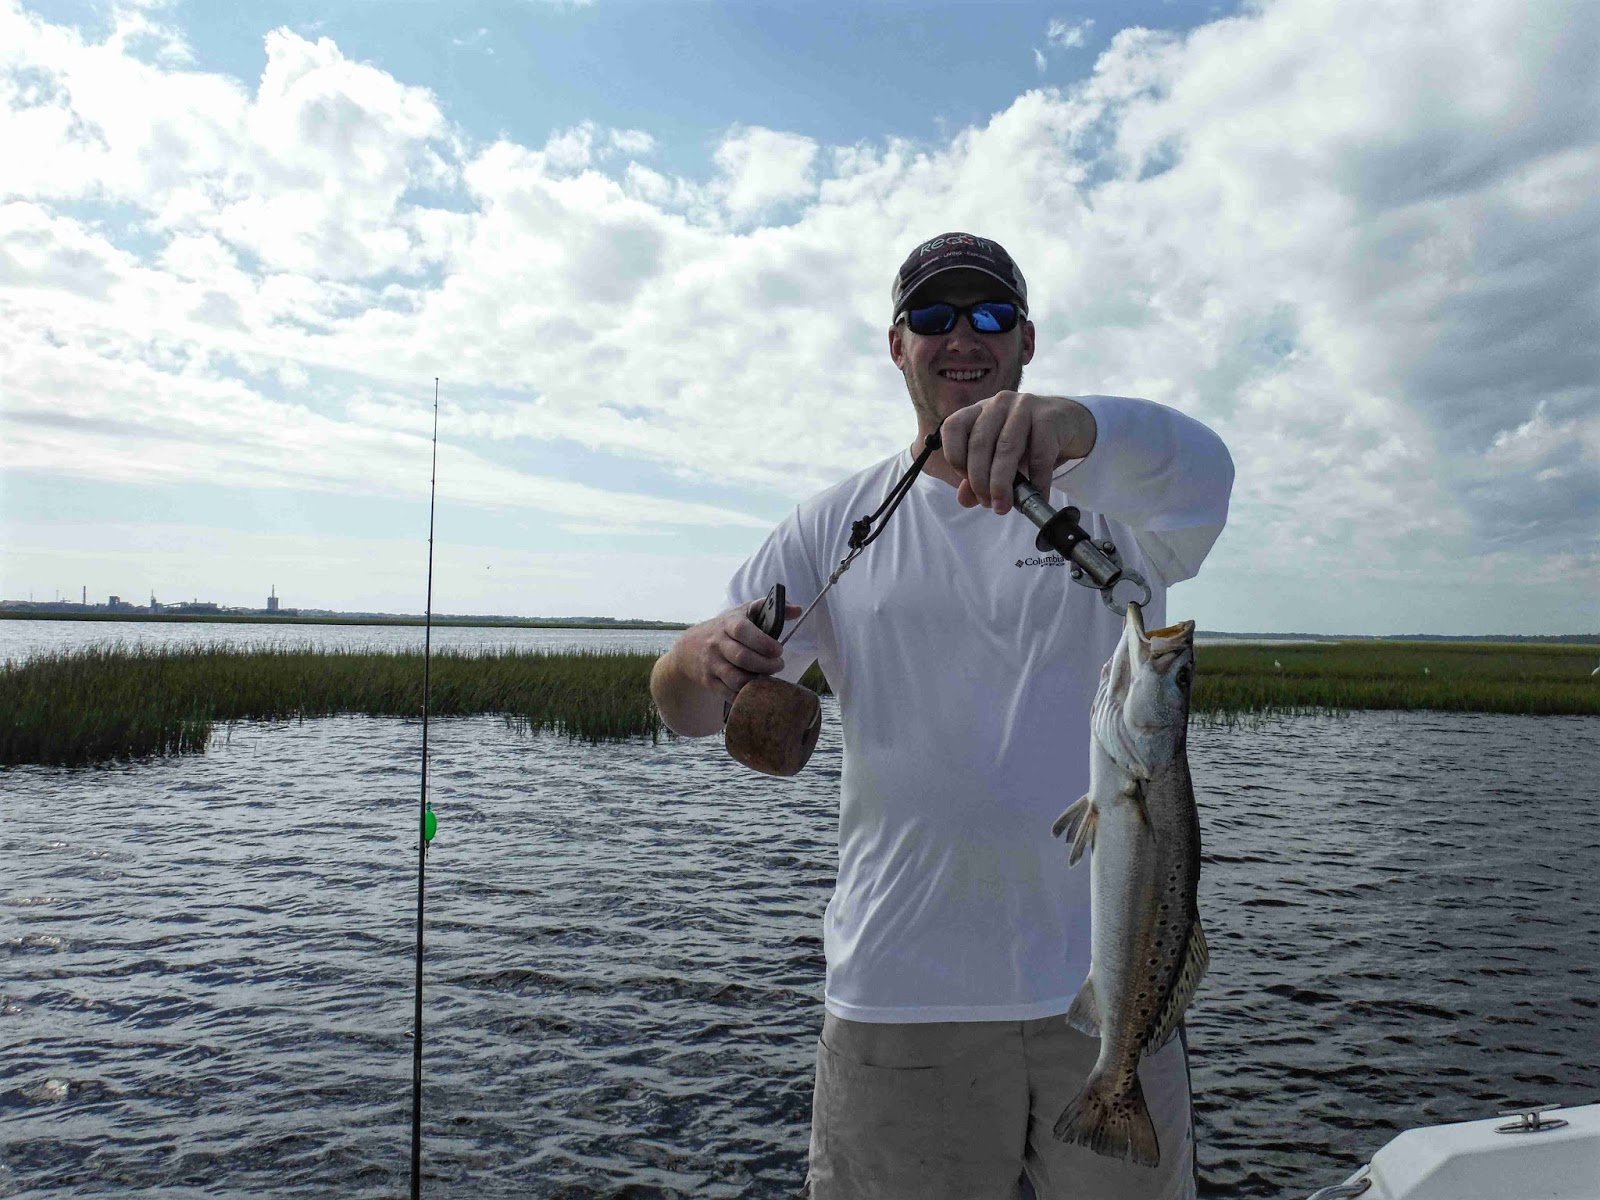 Amelia island fishing reports high tide trout for Amelia island fishing